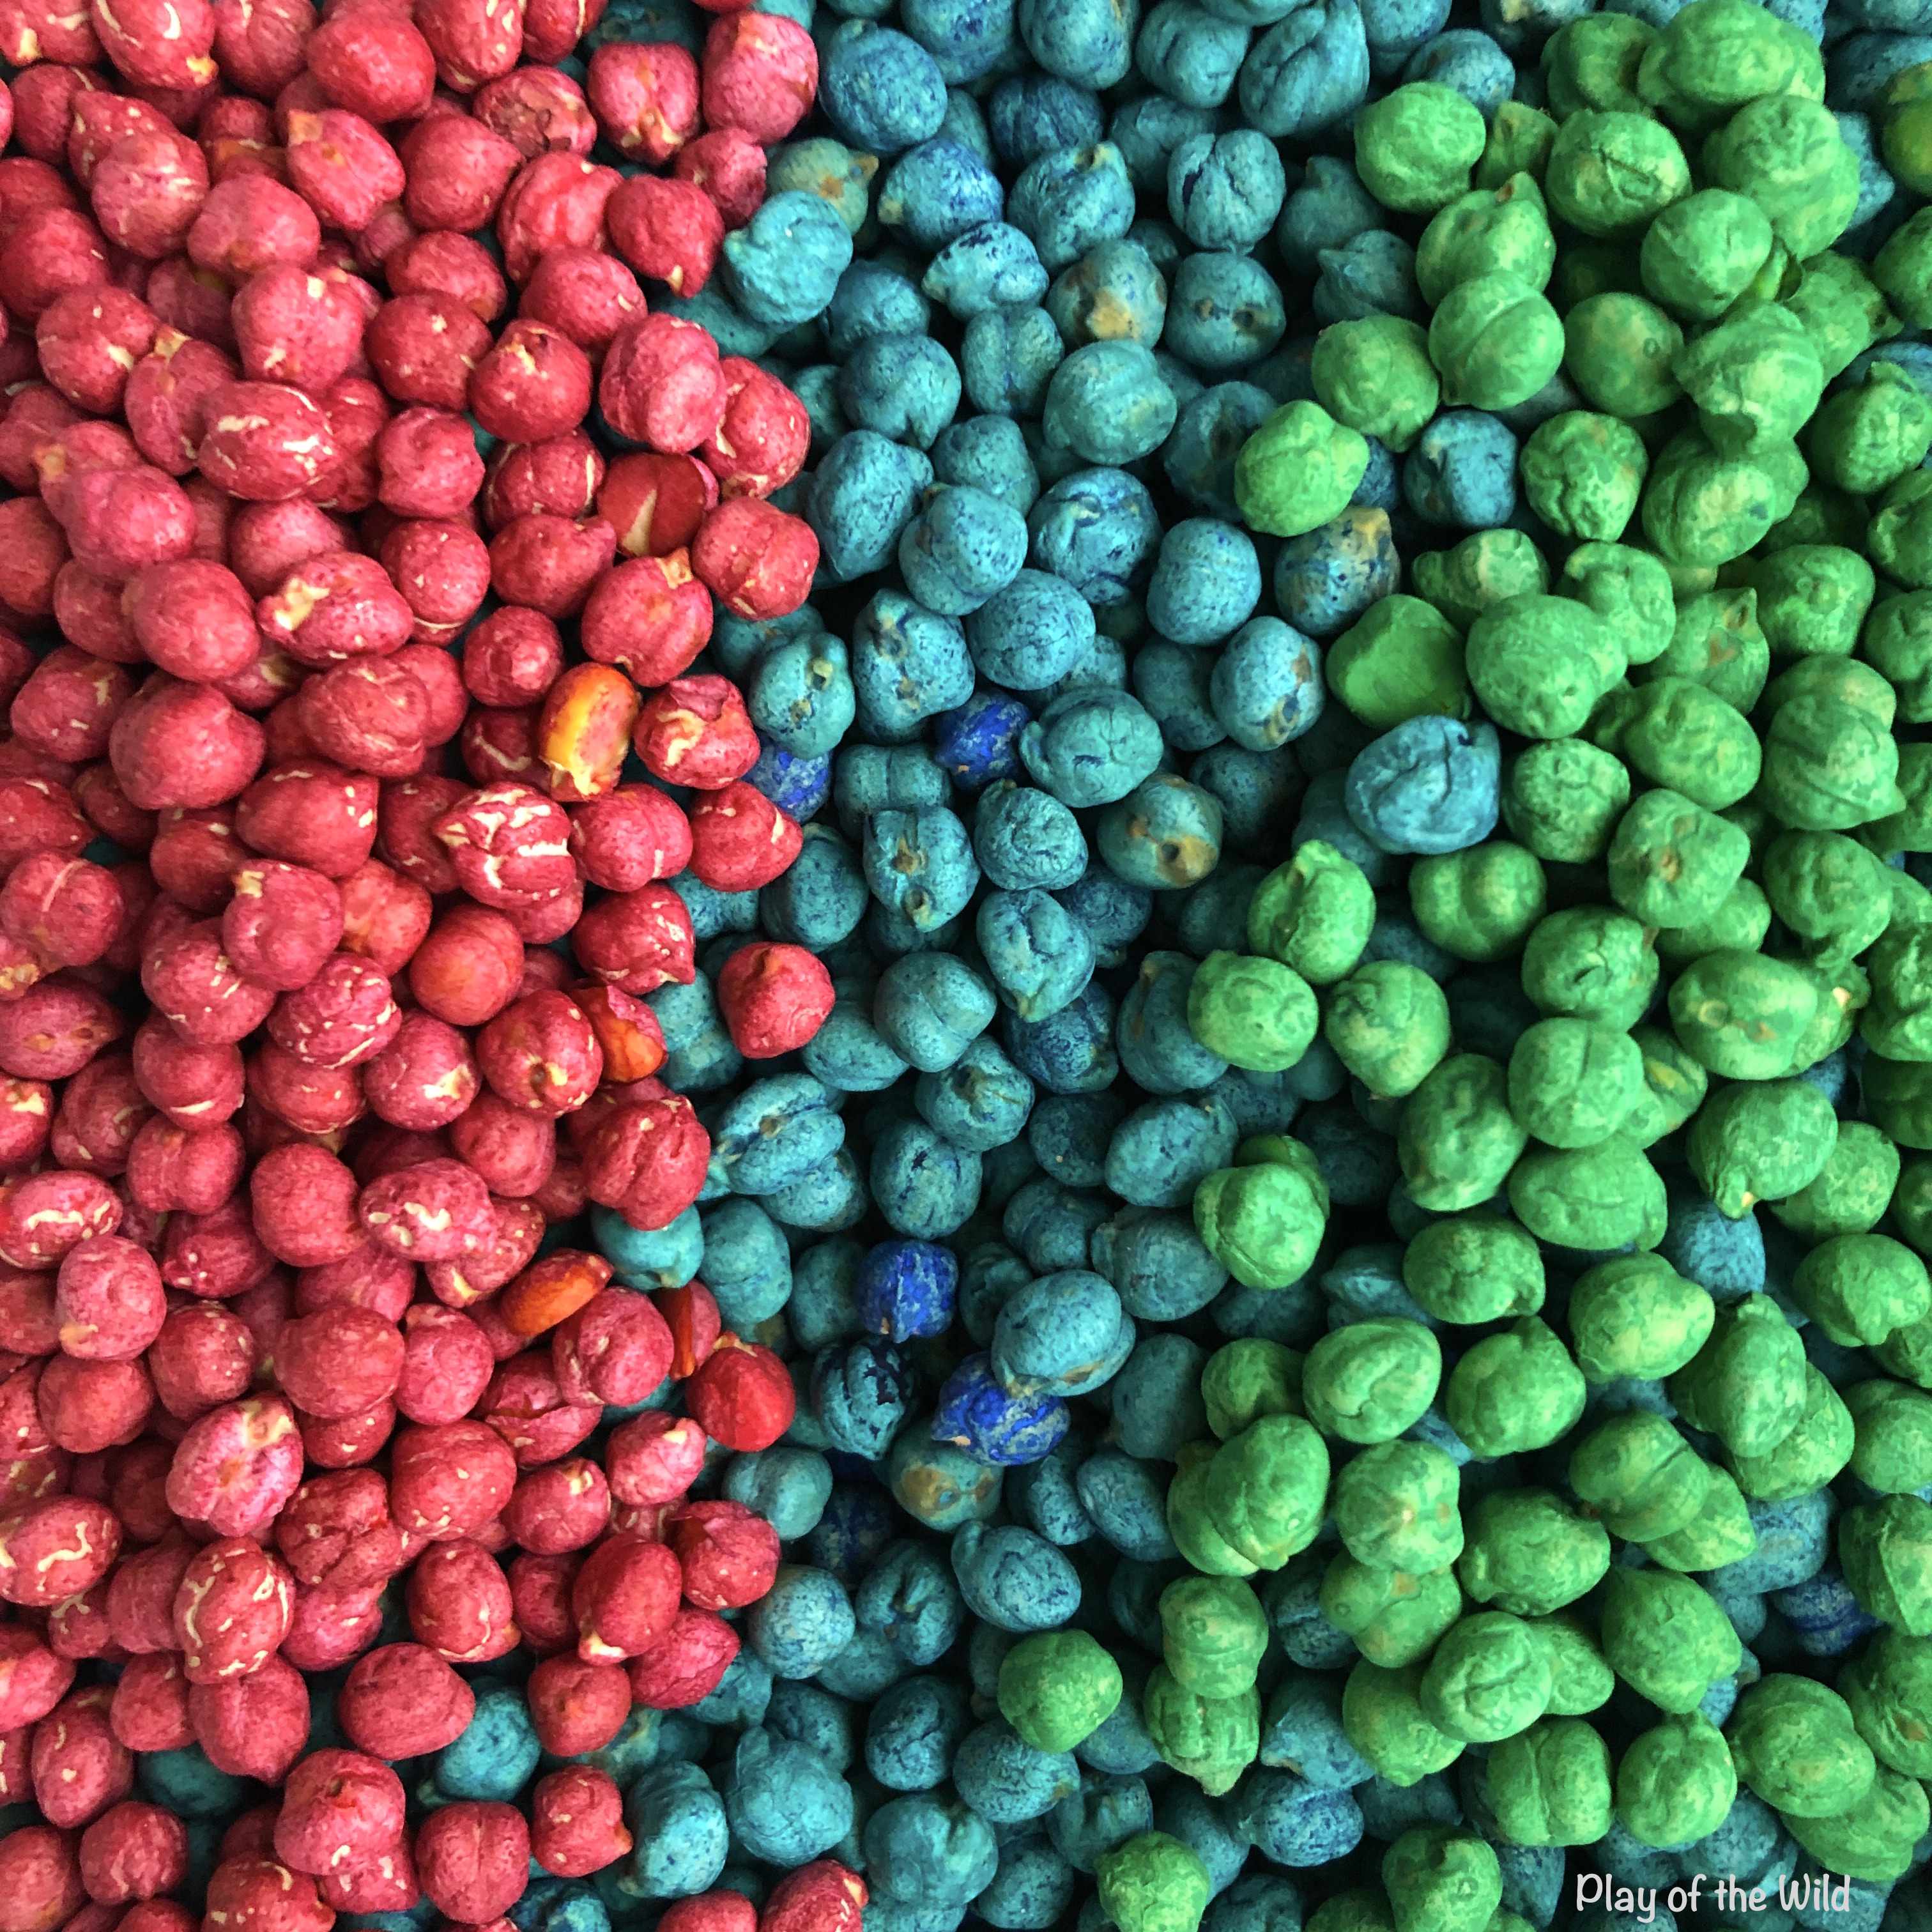 How to Dye Chickpeas with Food Coloring or Watercolors